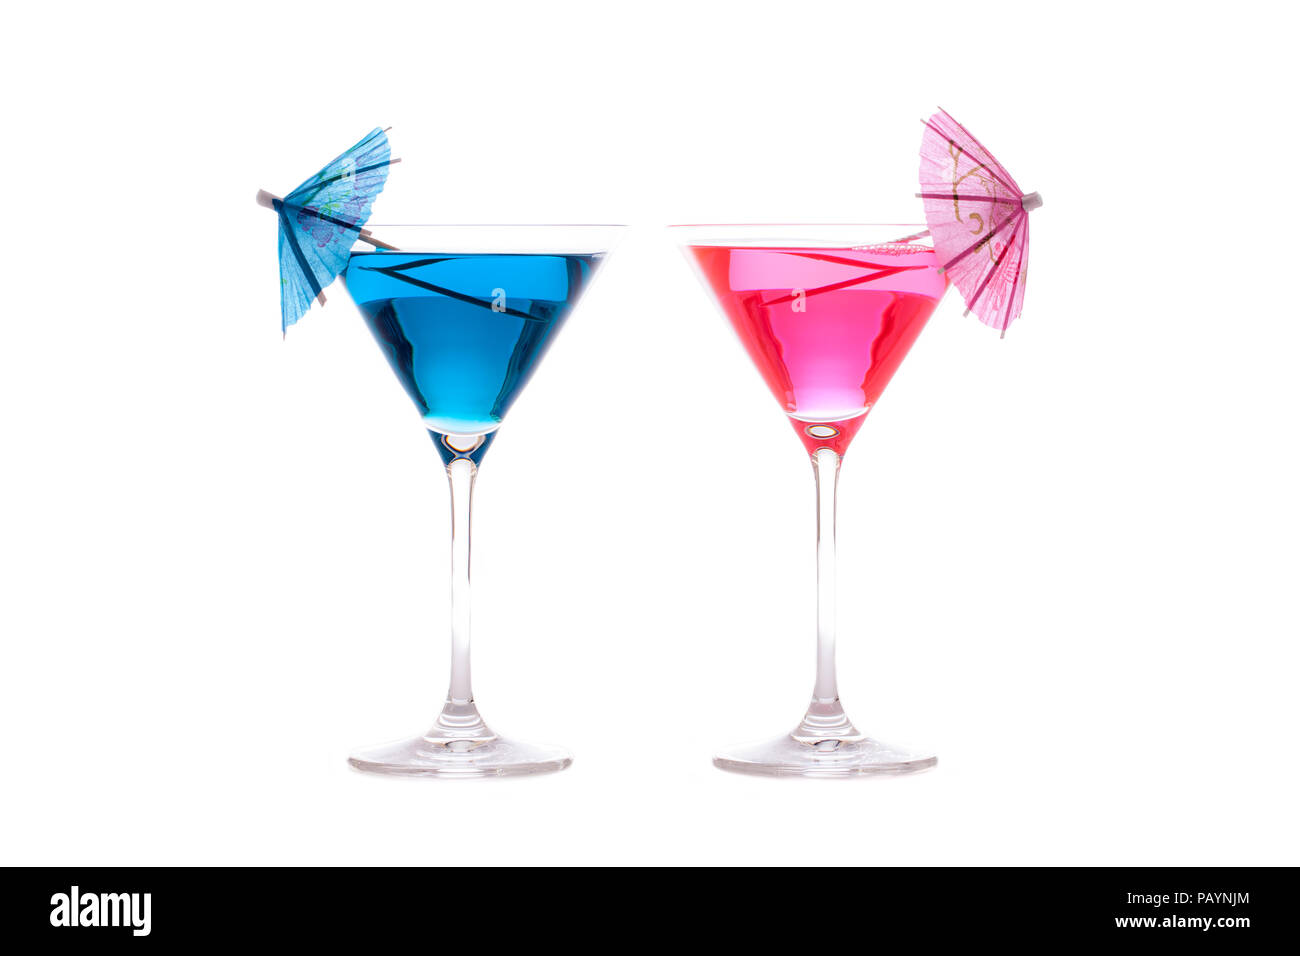 His and hers party or vacation cocktails. Neon blue and pink summer fun alcoholic drinks in cocktail glasses with decorative umbrellas. Isolated again - Stock Image